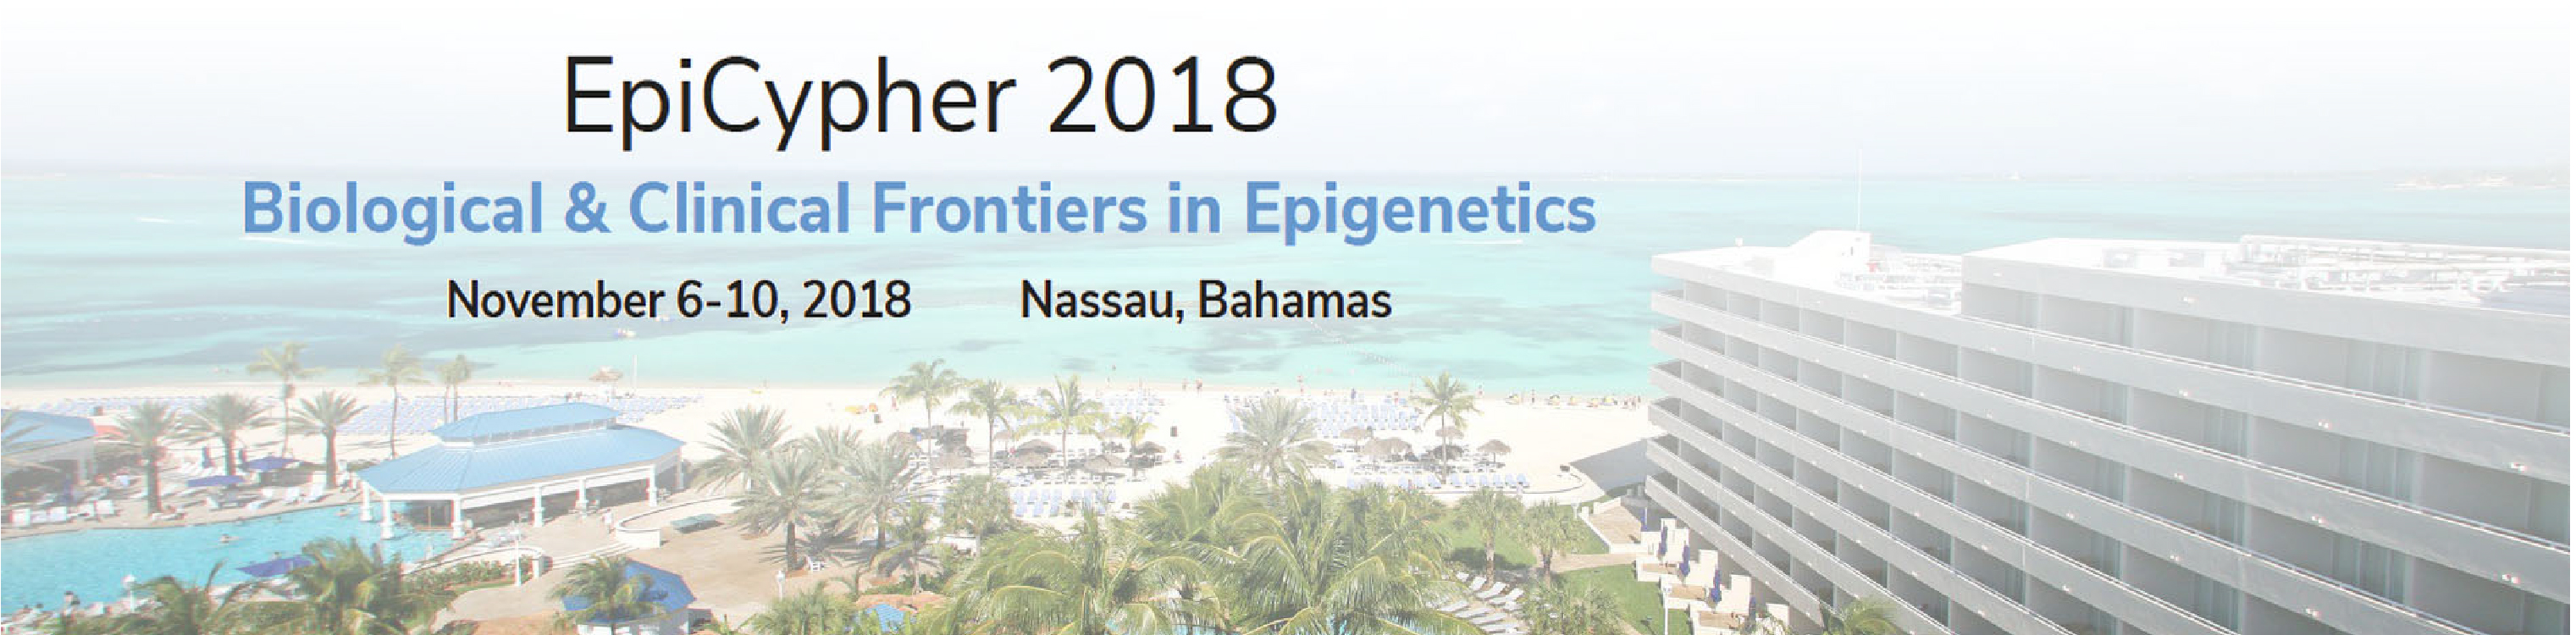 EpiCypher2018: Biological and Clinical Frontiers in Epigenetics